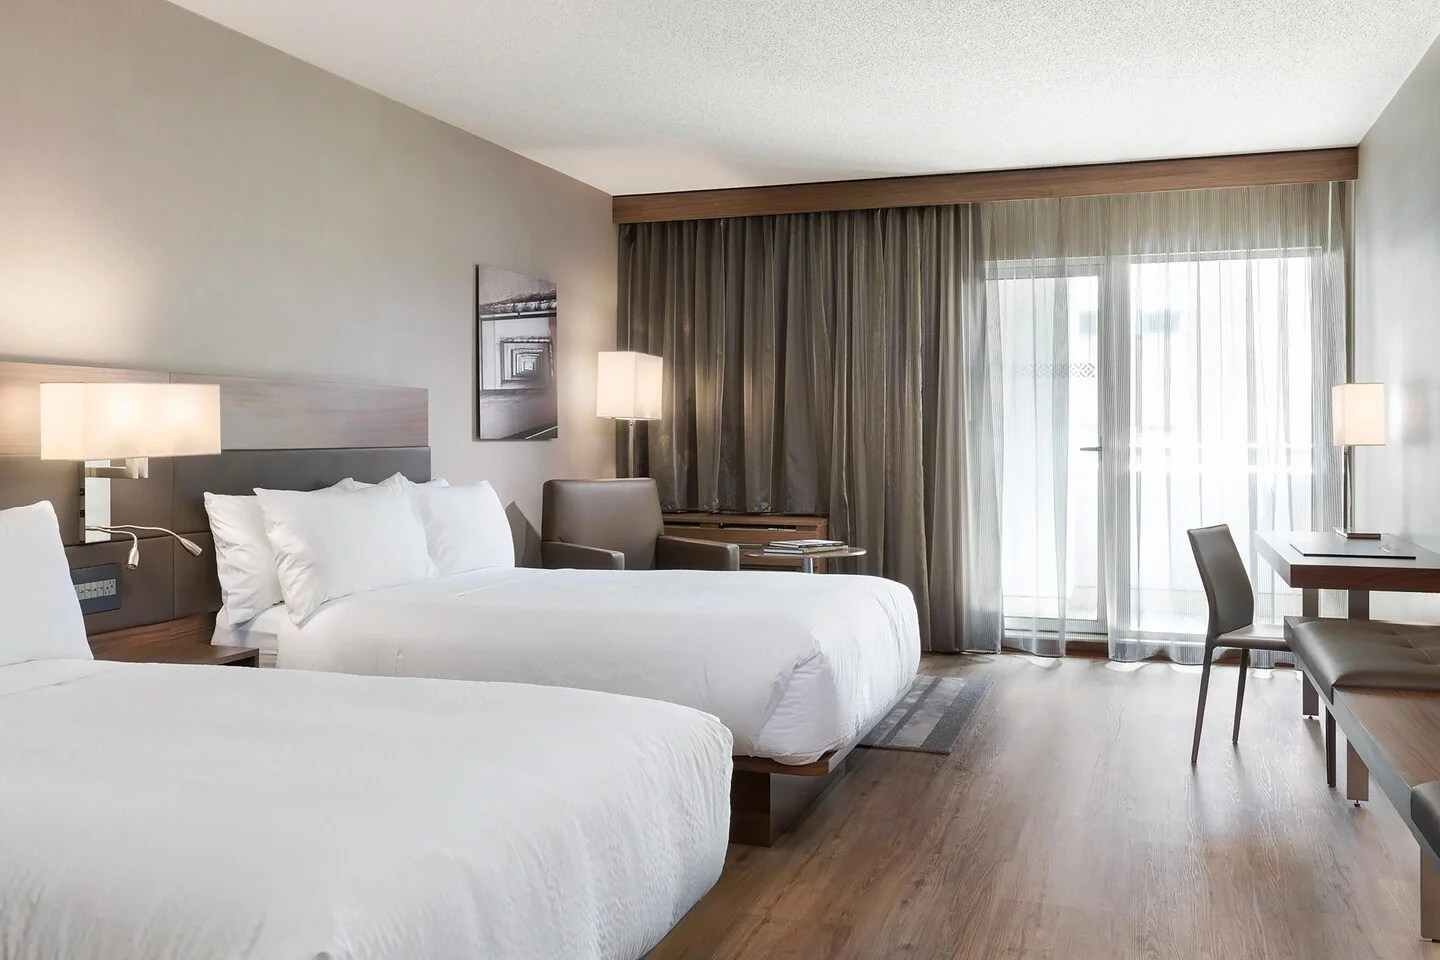 US hotel occupancy rates are plunging due to coronavirus